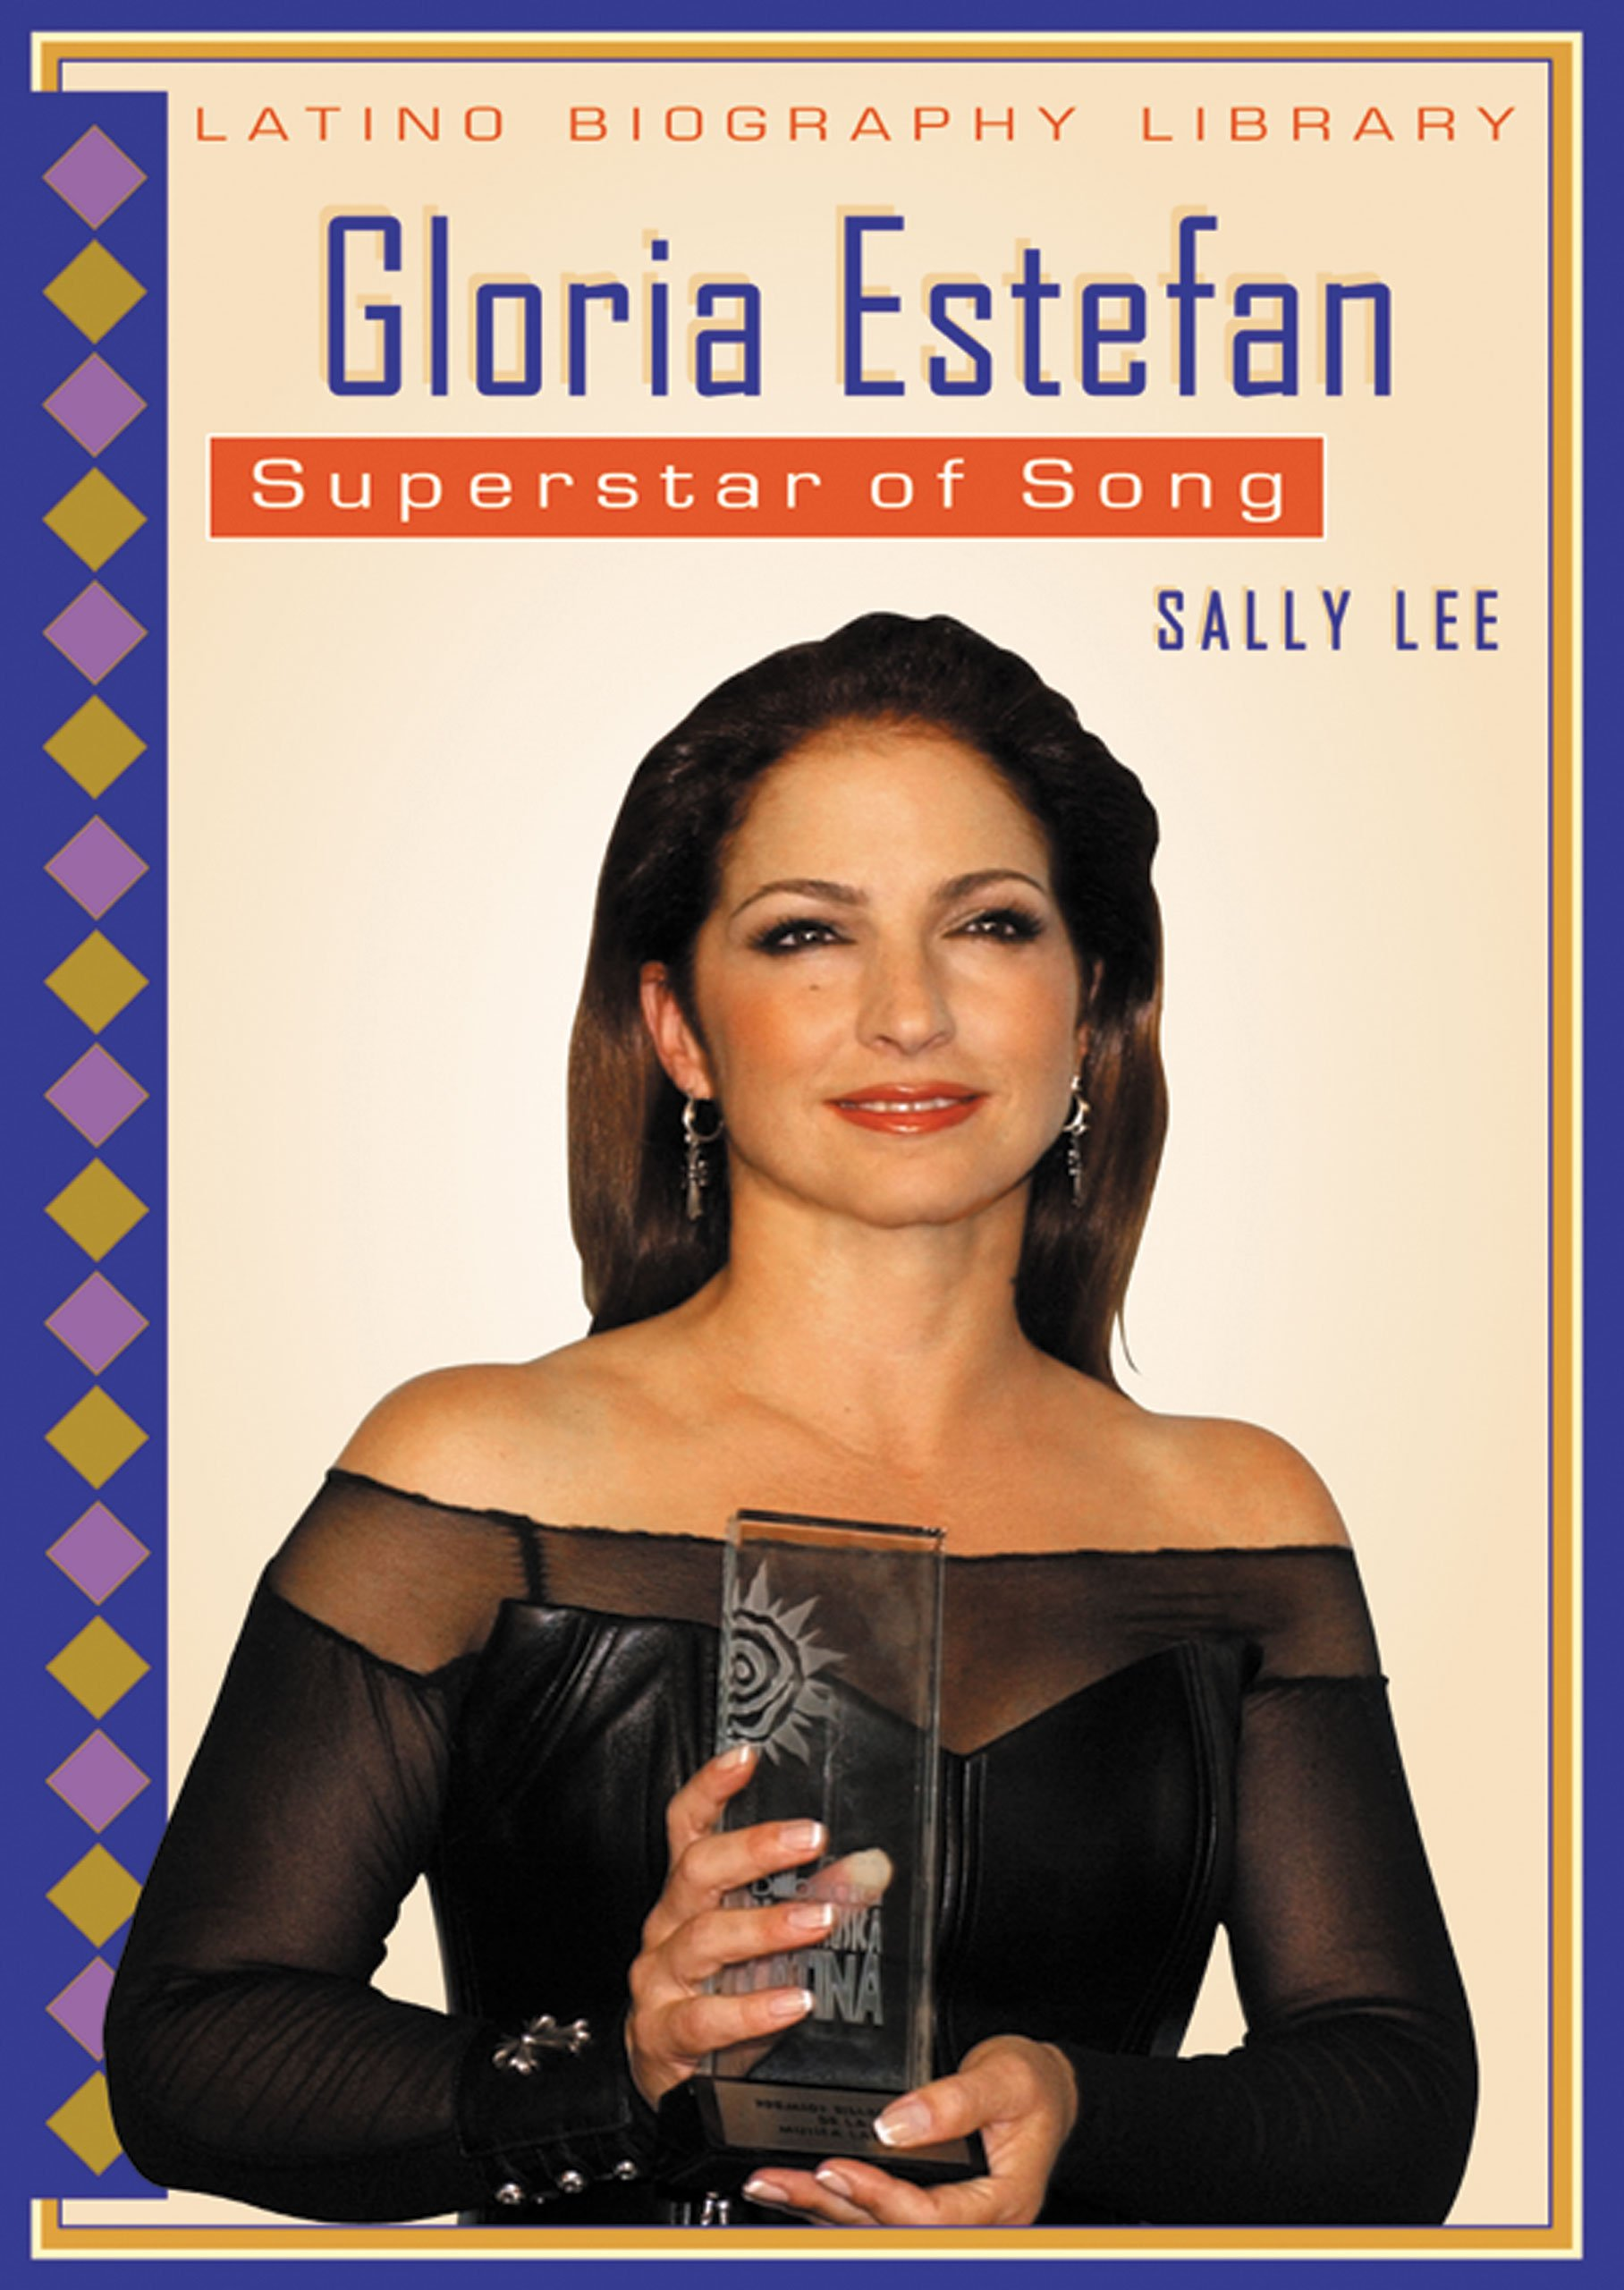 Gloria Estefan: Superstar Of Song (Latino Biography Library) pdf epub